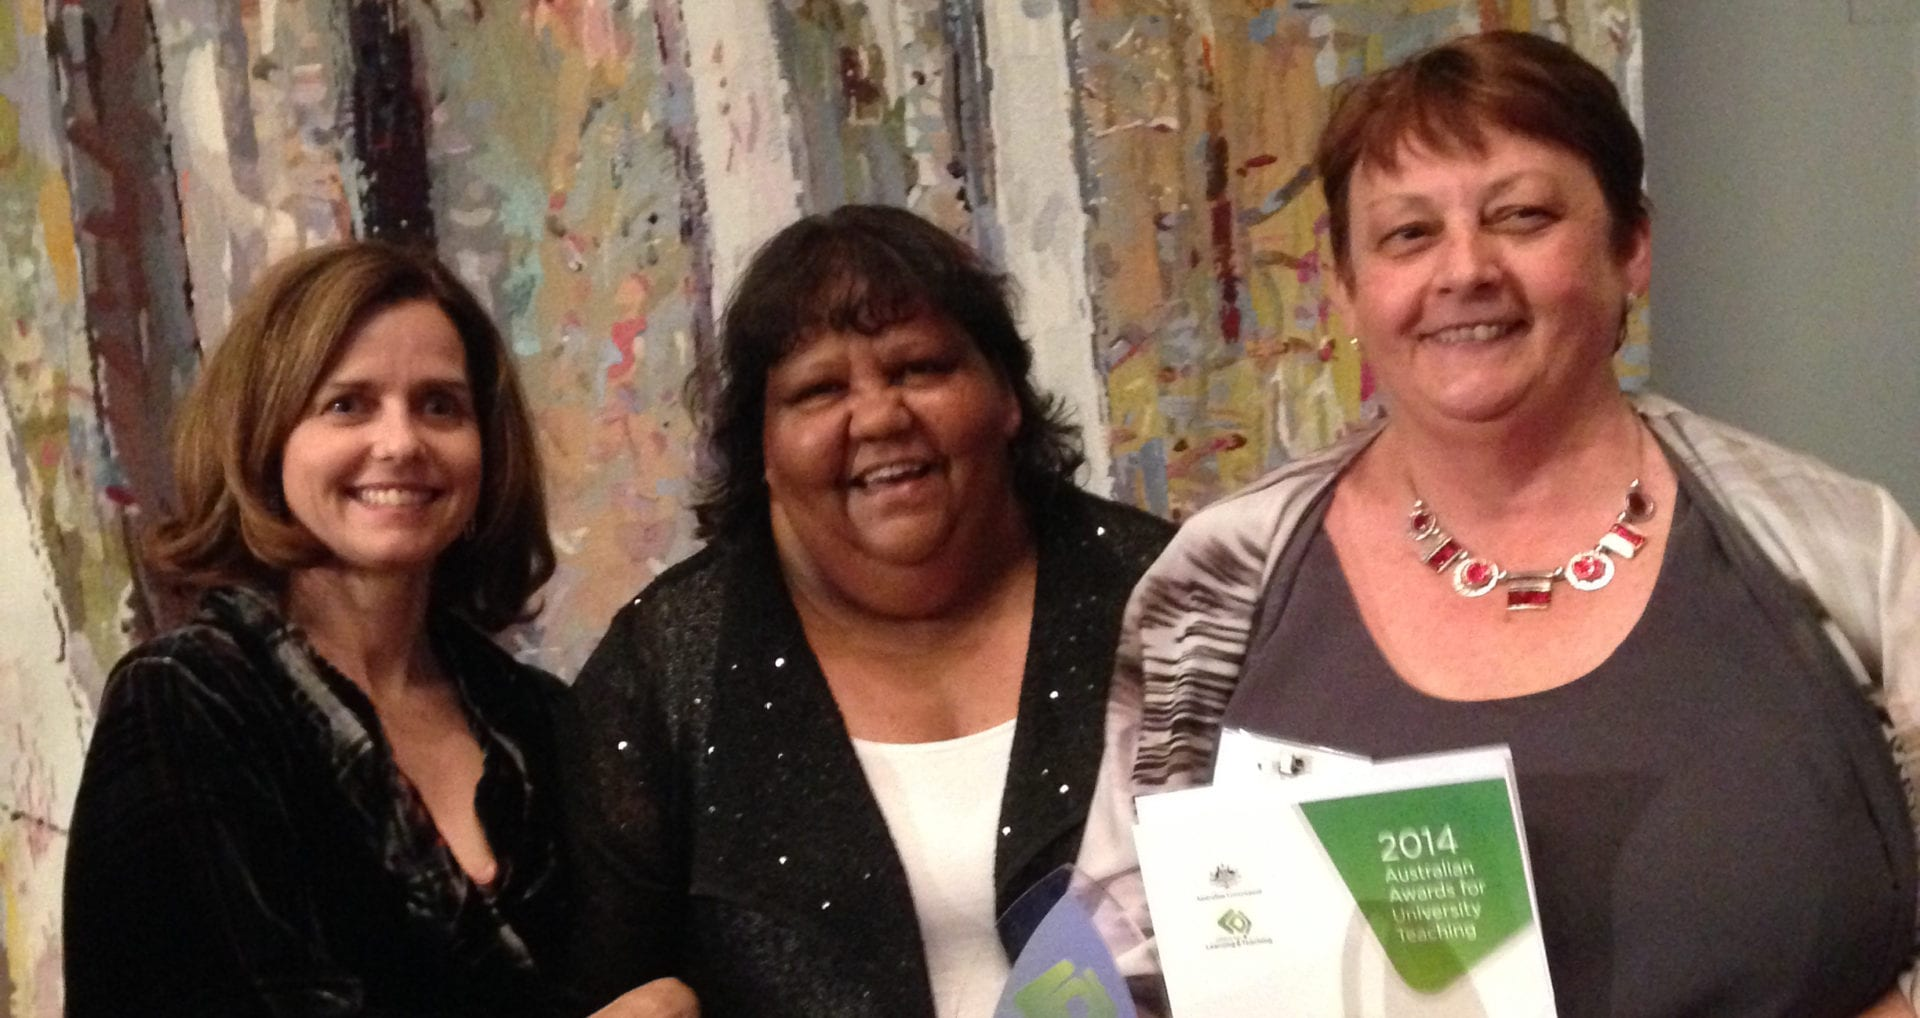 Curtin wins national award for Indigenous health course unit